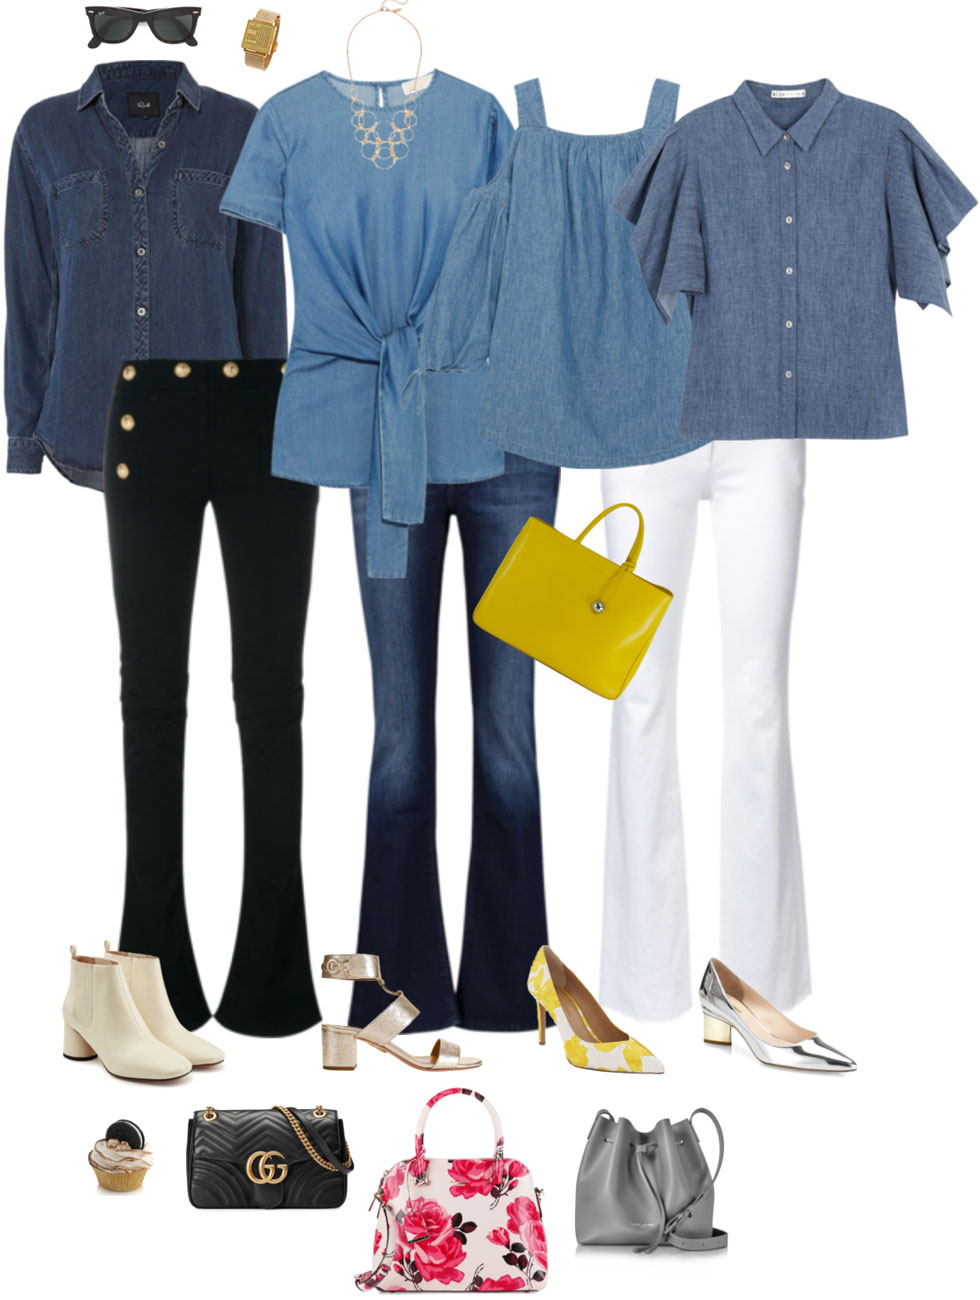 Ensemble: Denim Shirt & Bootcuts or Bellbottoms